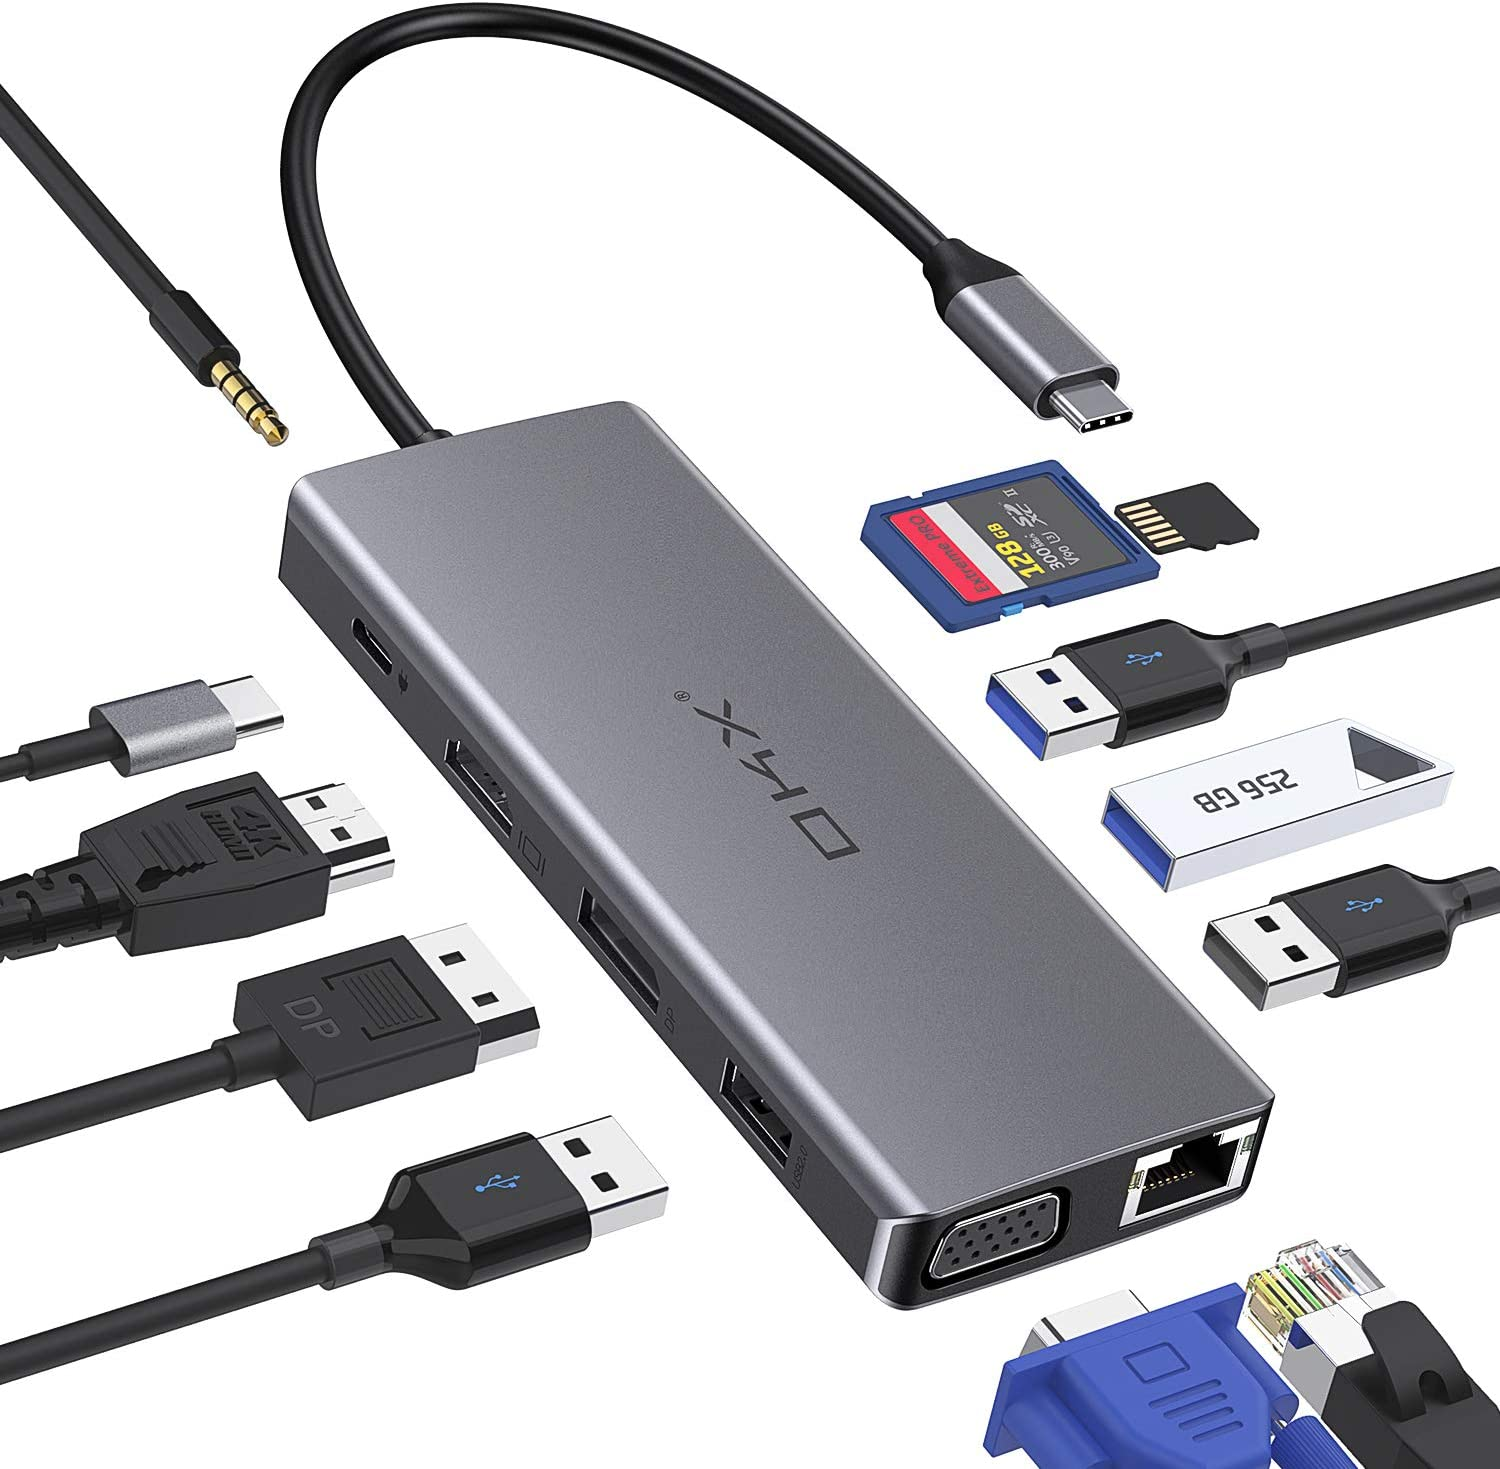 USB C Hub, OKX 12 in 1 Type C Adapter Dock with 4K HDMI/DP, VGA, PD 3.0, Ethernet, SD/TF Card Reader, 4 USB-A, Mic/Audio for MacBook Pro and Type-C Laptops (Triple Display Docking Station for Windows)